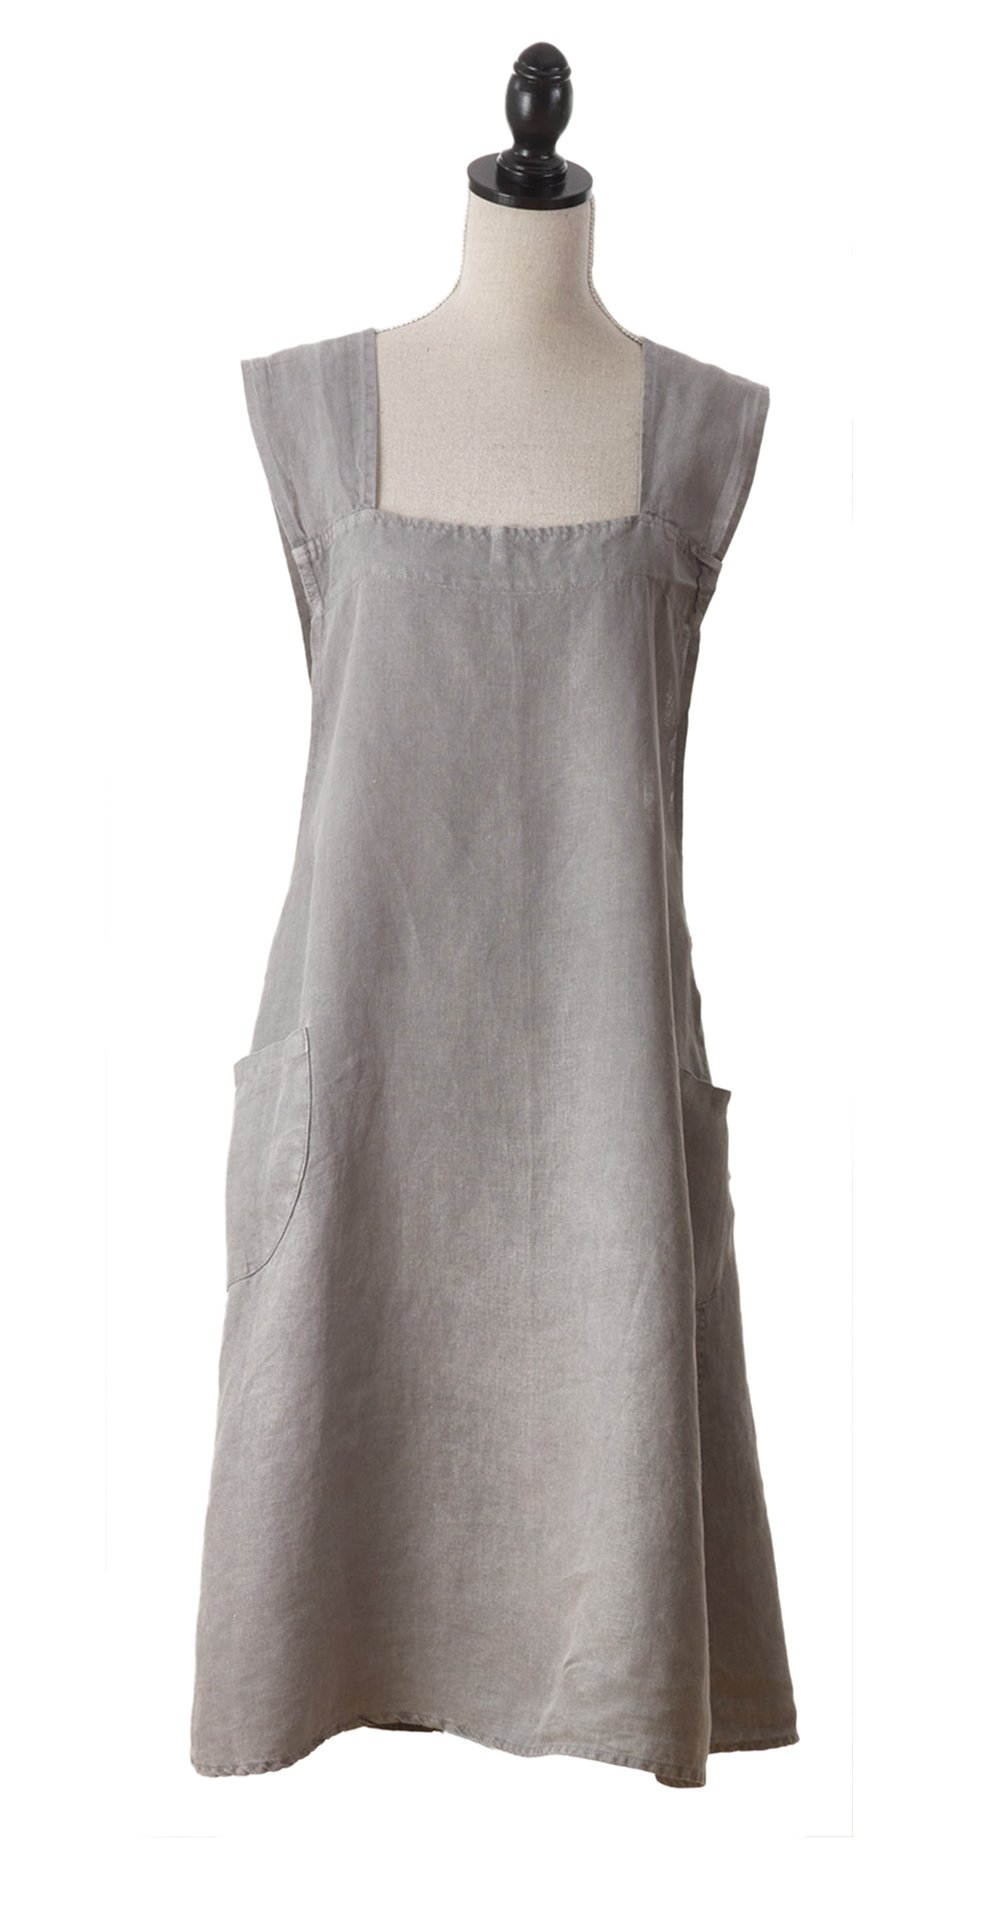 Fennco Styles Solid Criss Cross Back Apron Linen Kitchen Apron - 5 Colors (Pewter) by fenncostyles.com